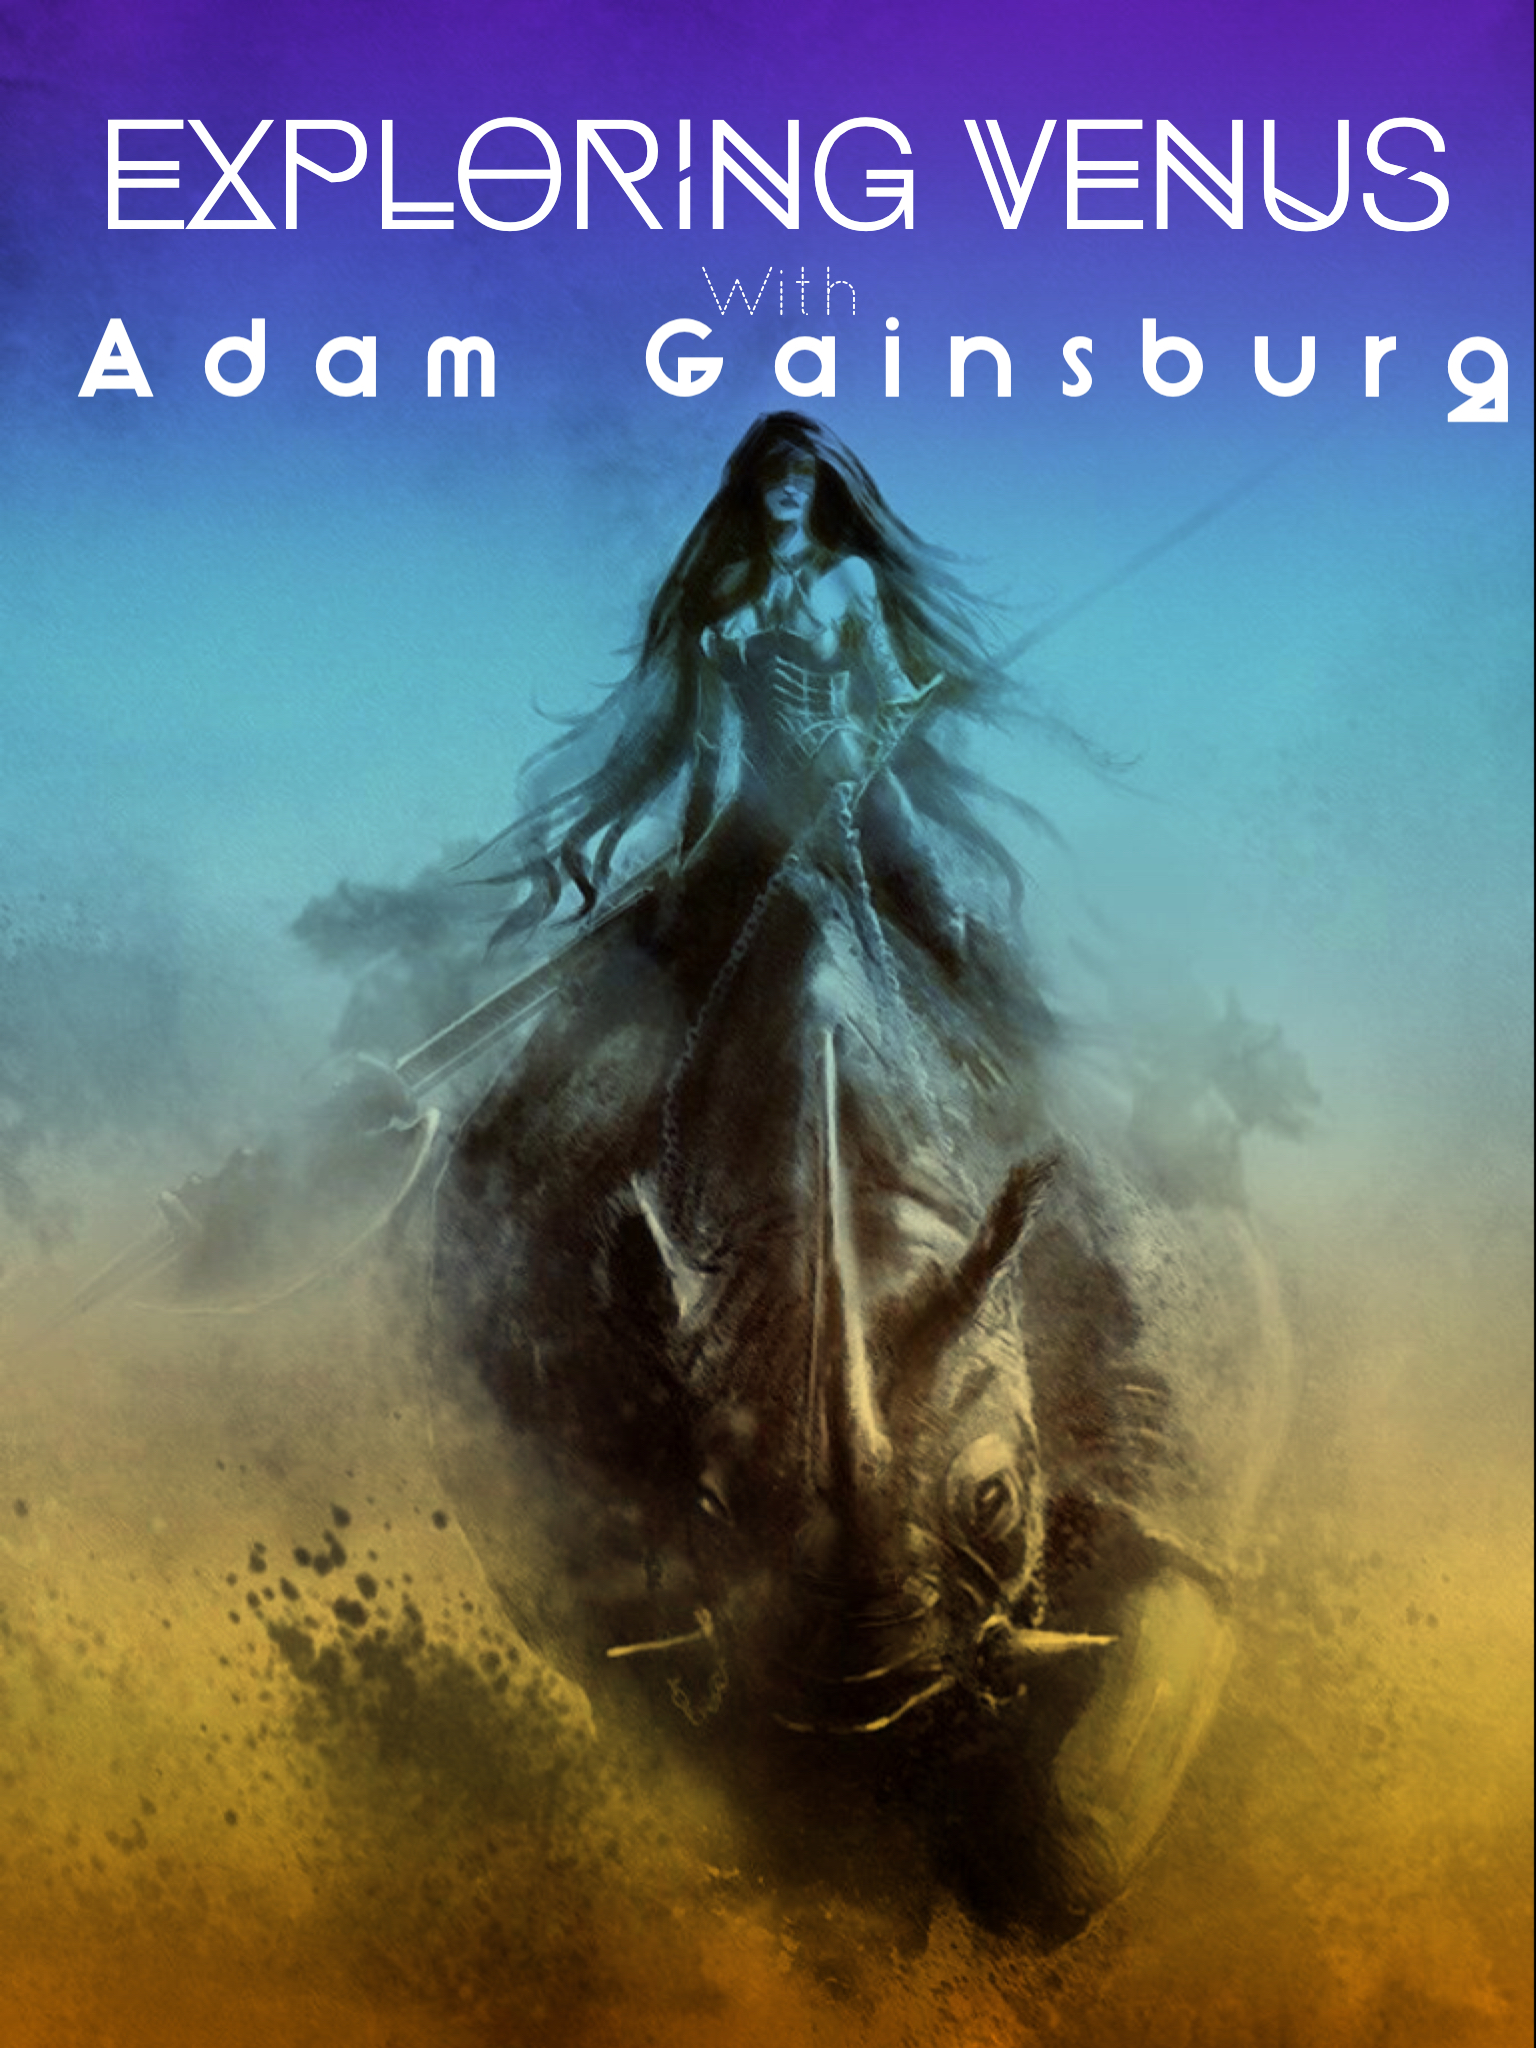 Exploring Venus with Adam Gainsburg